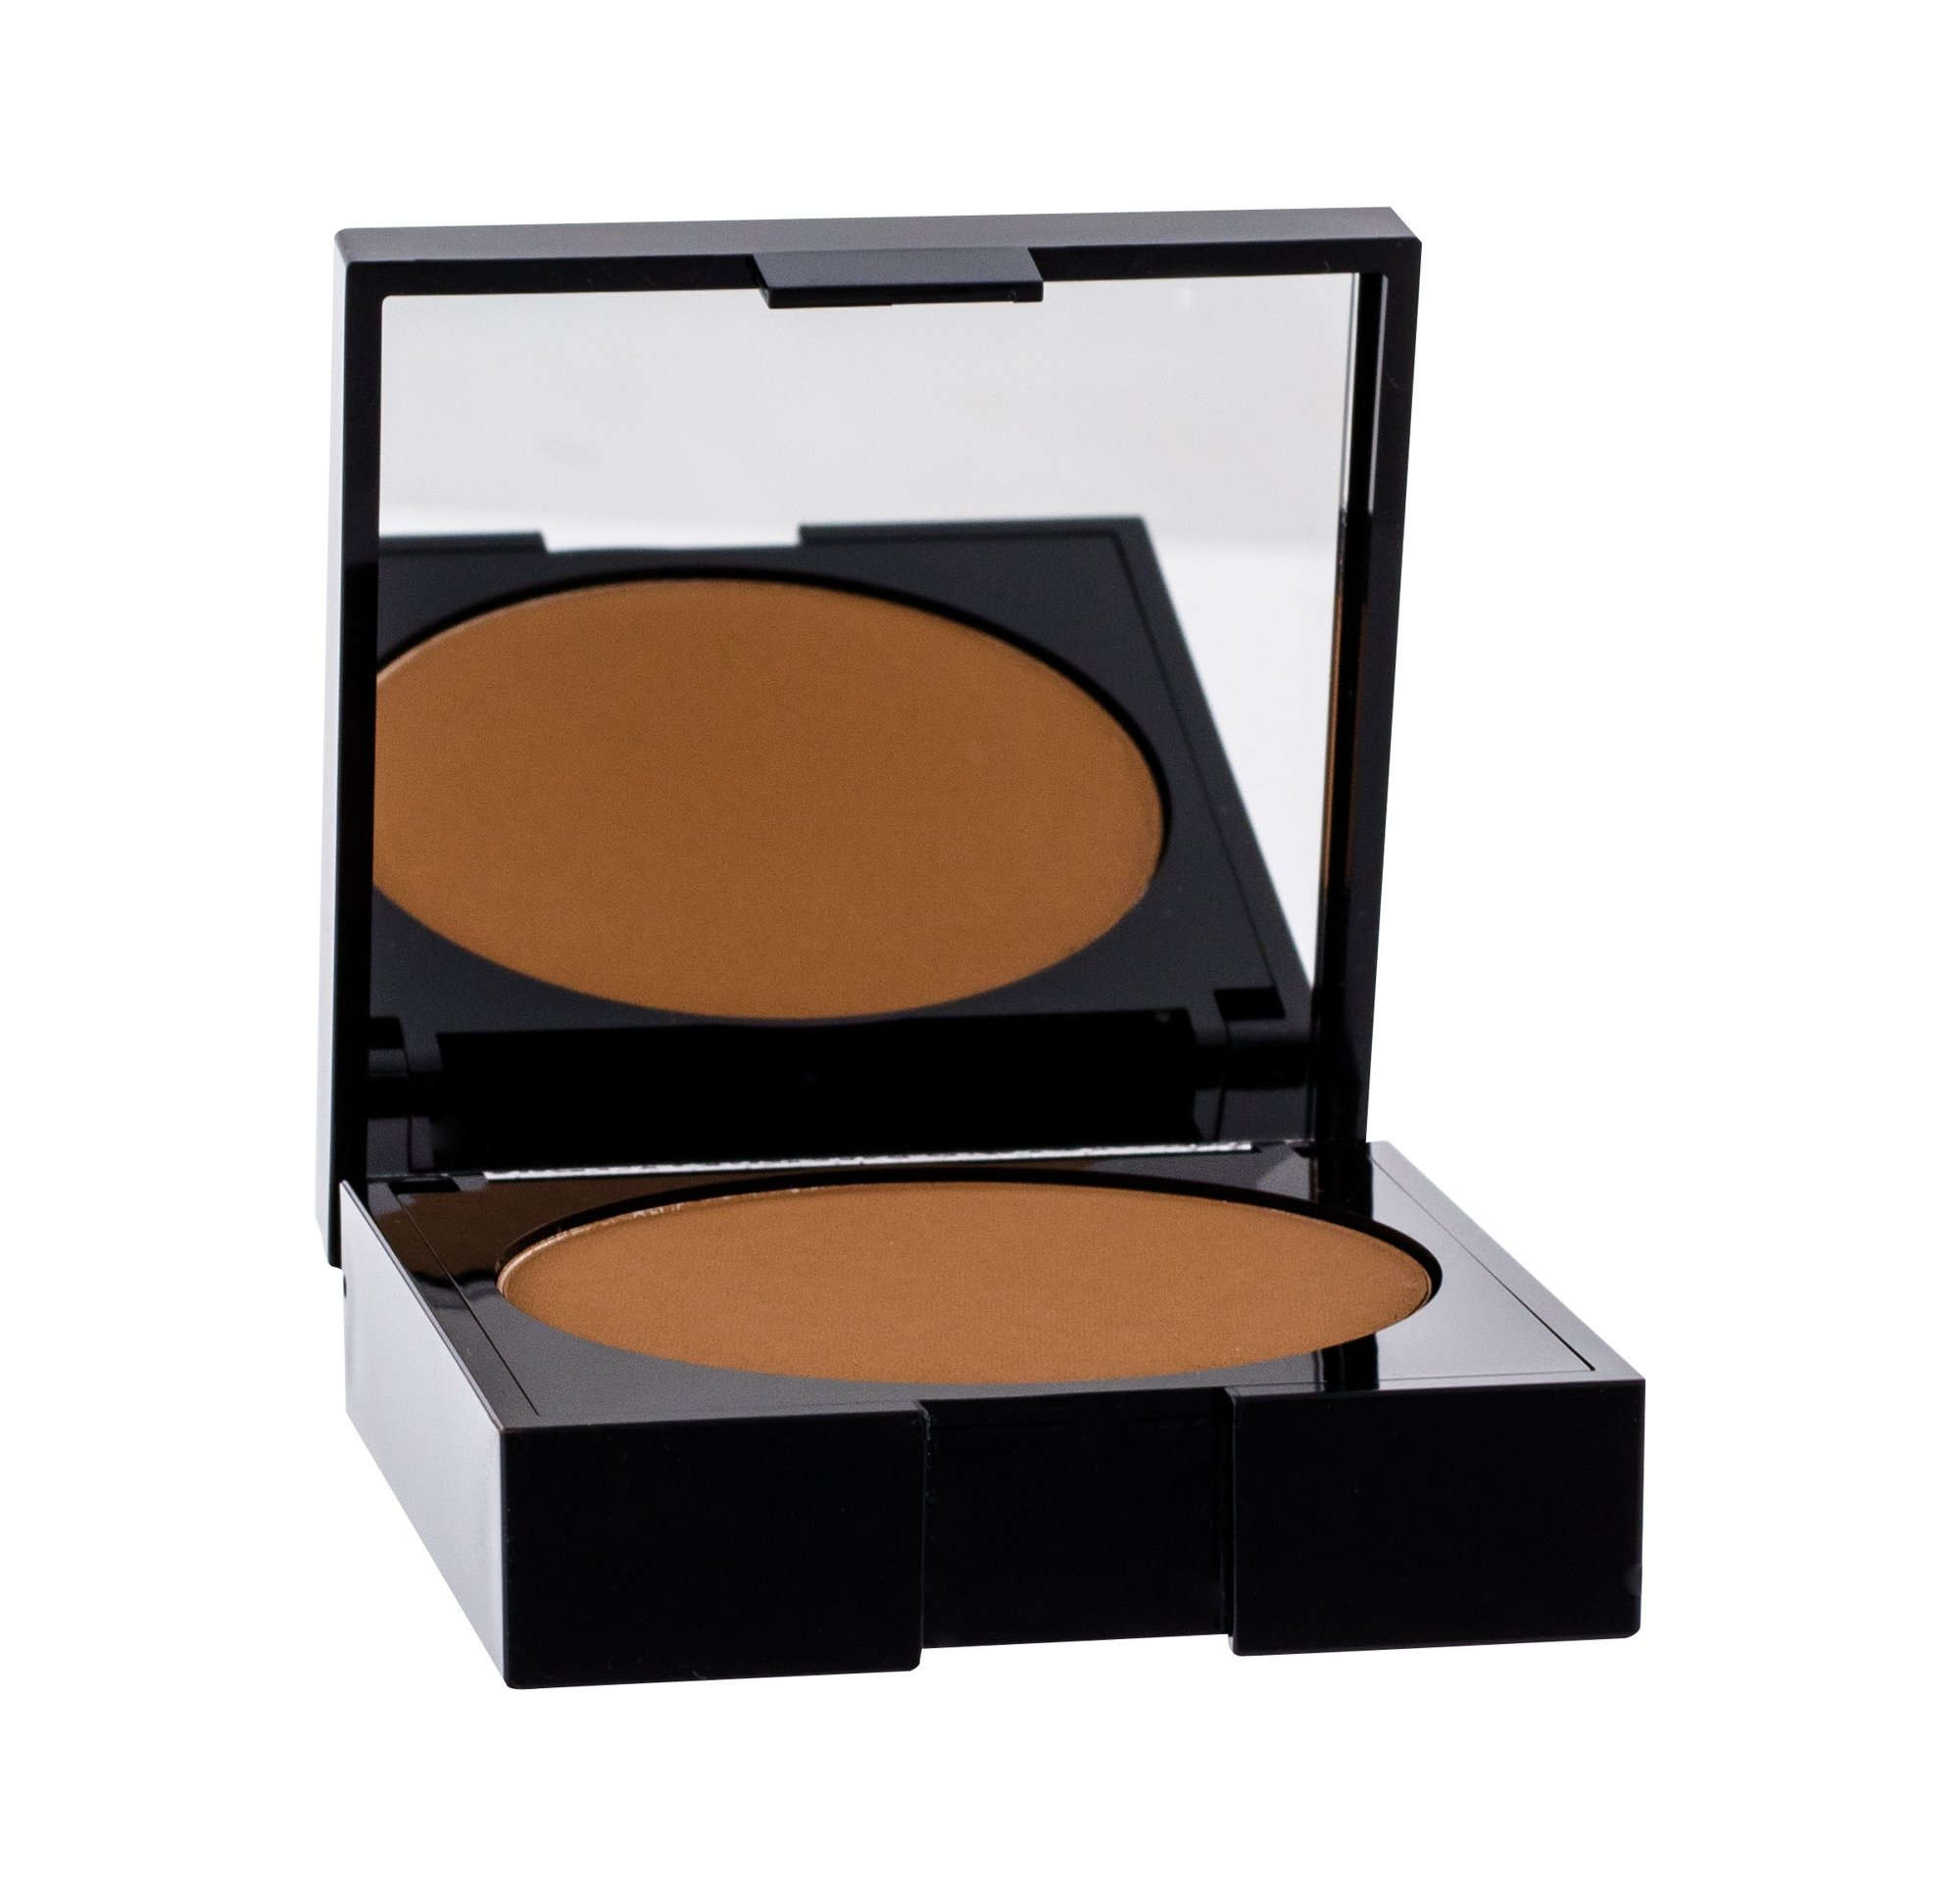 ALCINA Matt Contouring Powder Powder 9ml Dark